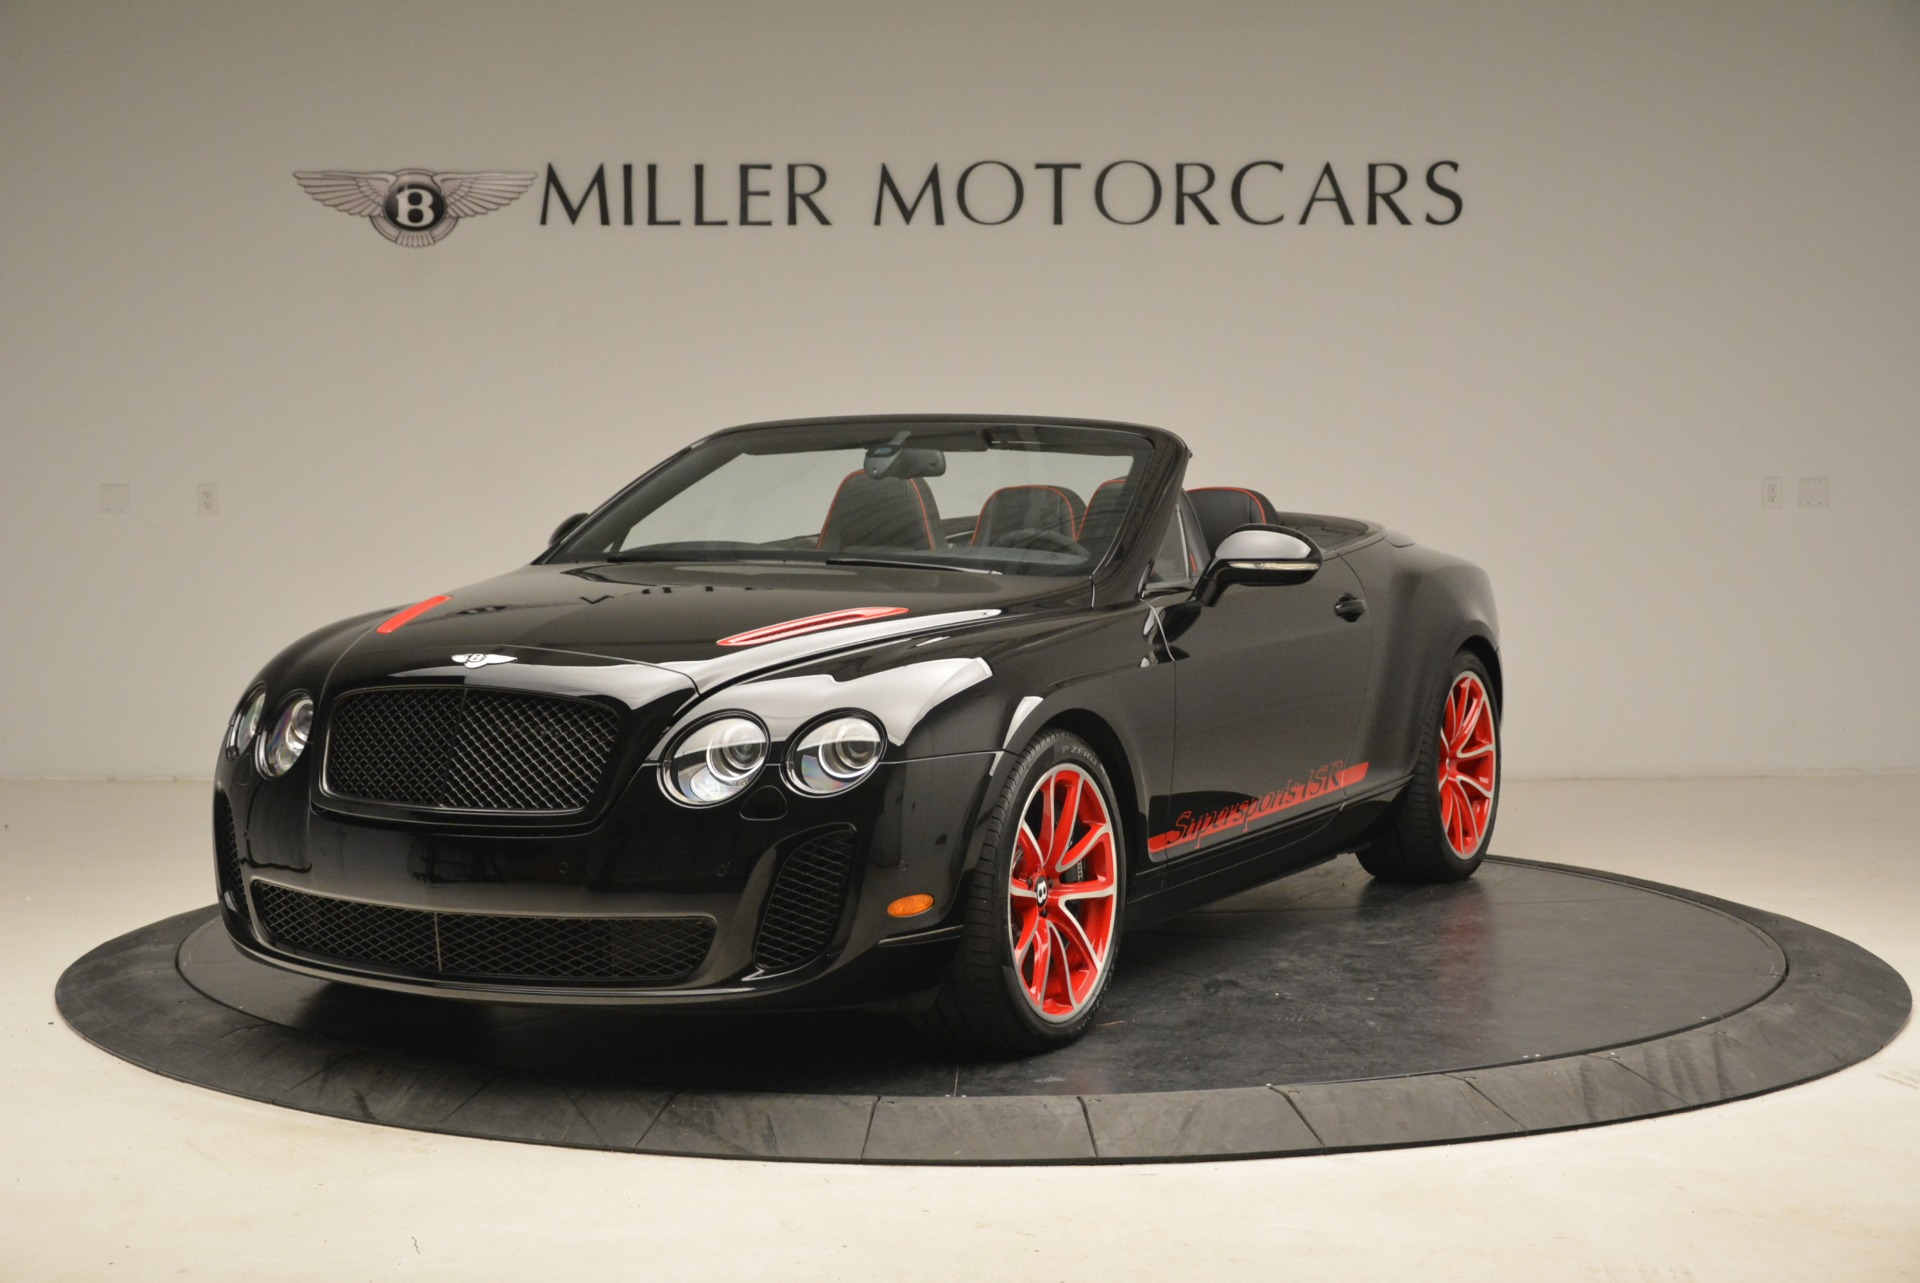 Used 2013 Bentley Continental GT Supersports Convertible ISR for sale Sold at Alfa Romeo of Westport in Westport CT 06880 1